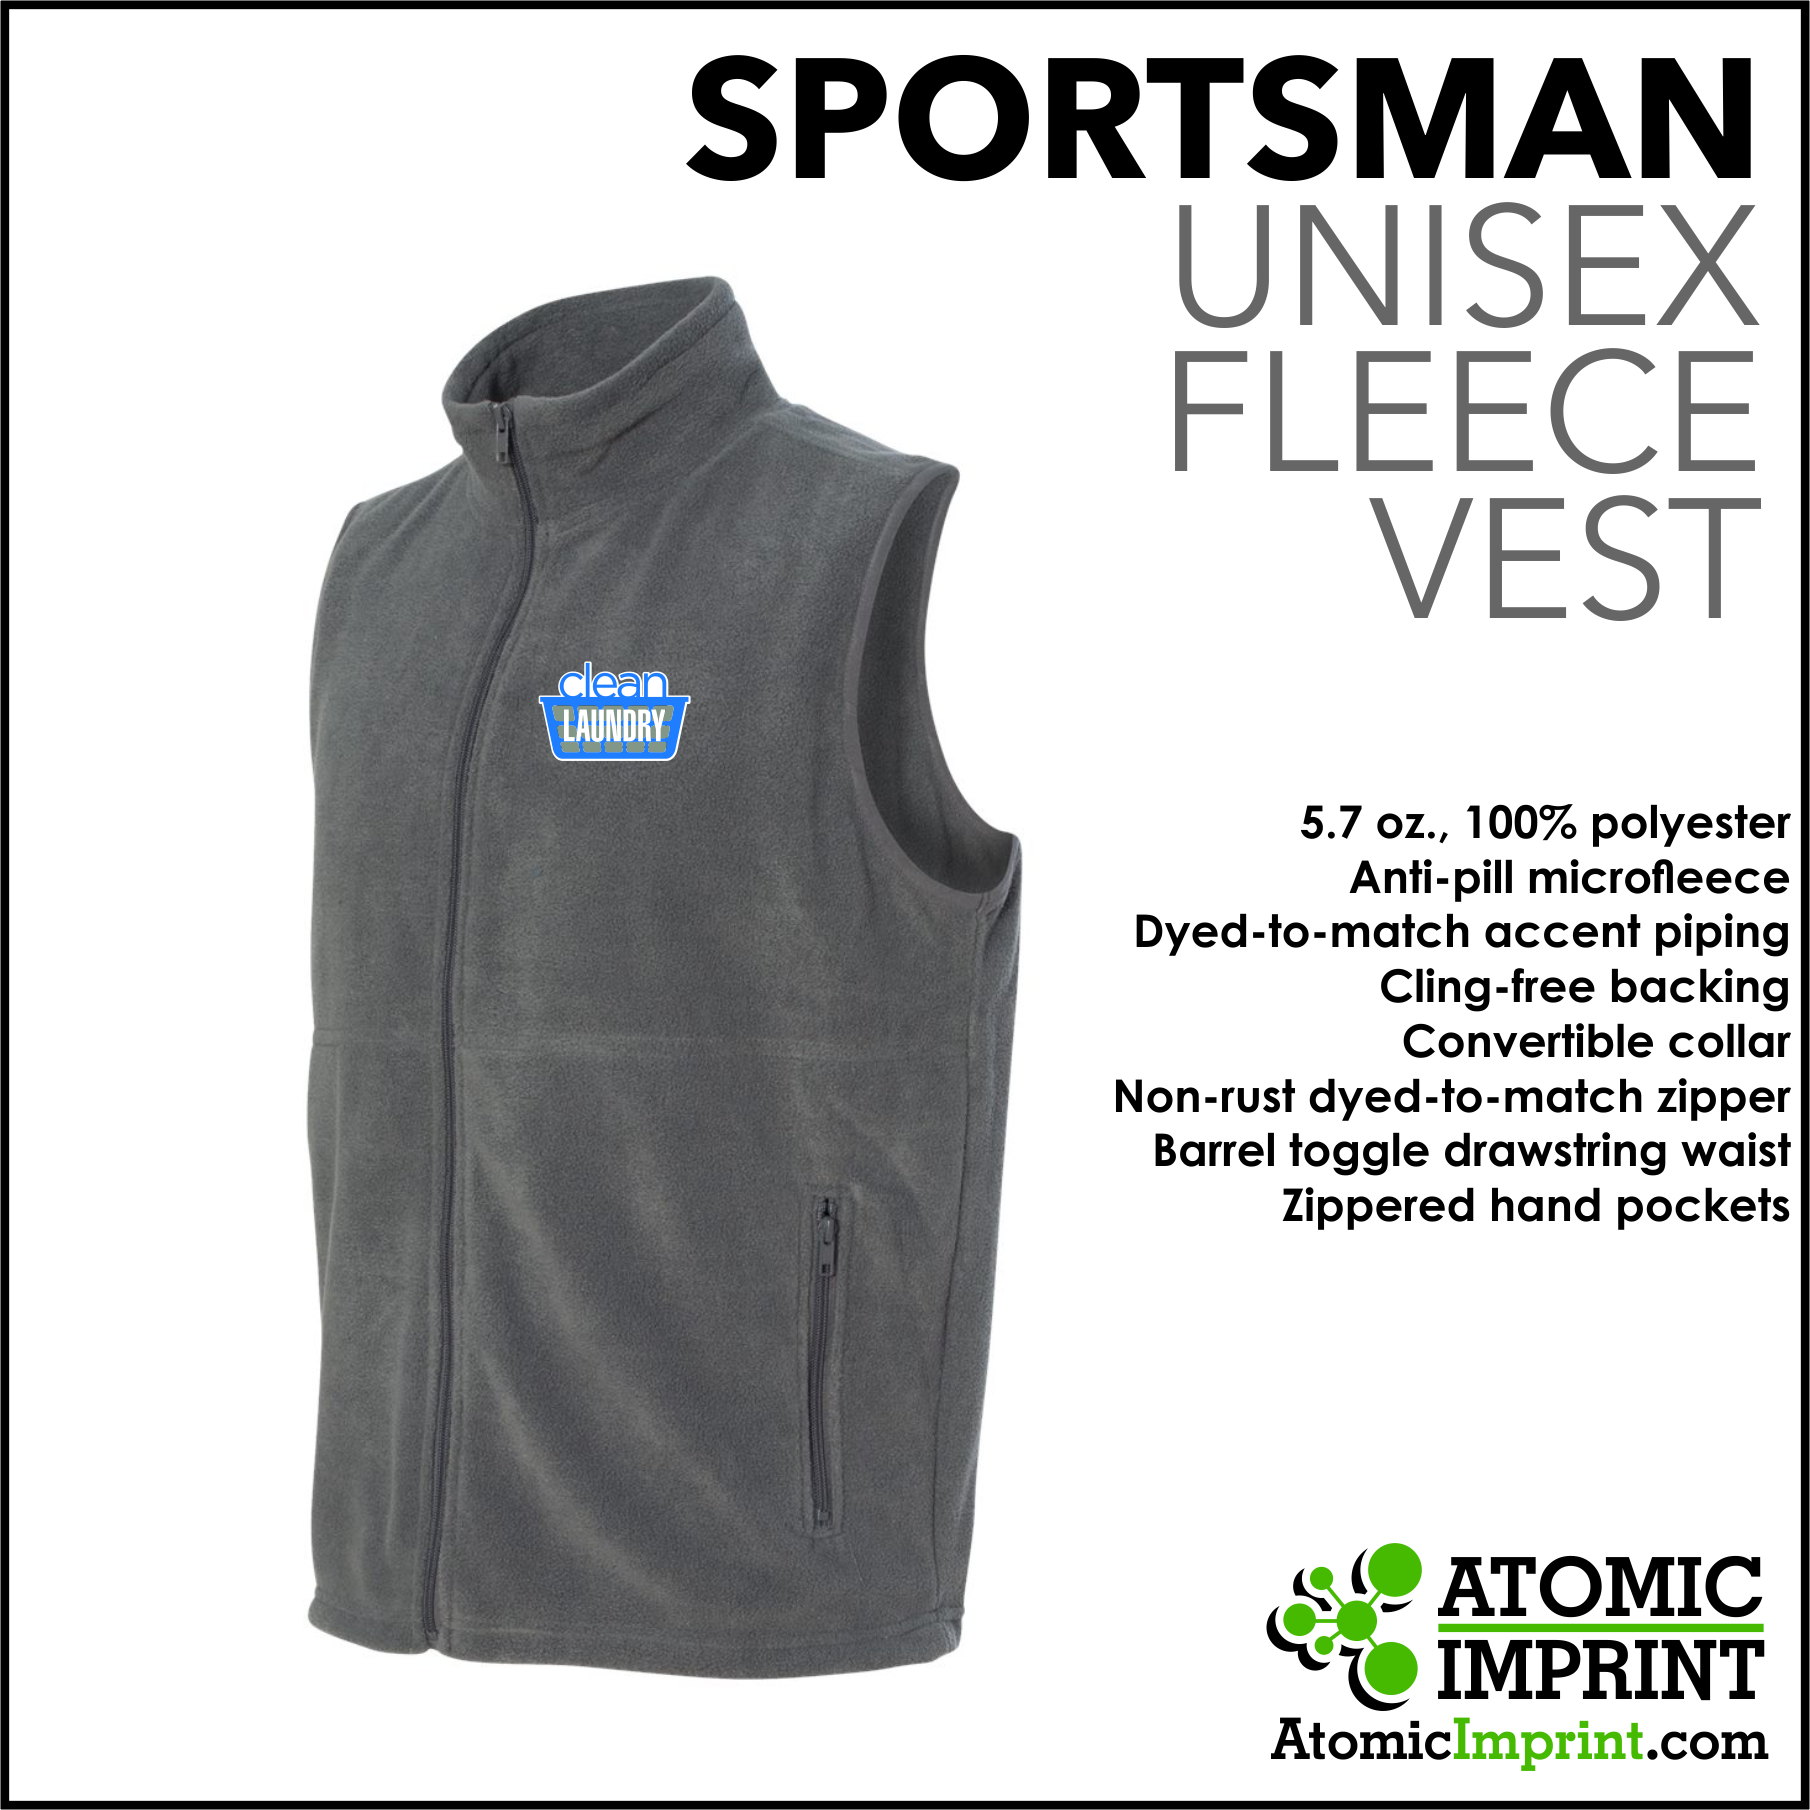 Clean Laundry Unisex Fleece Vest